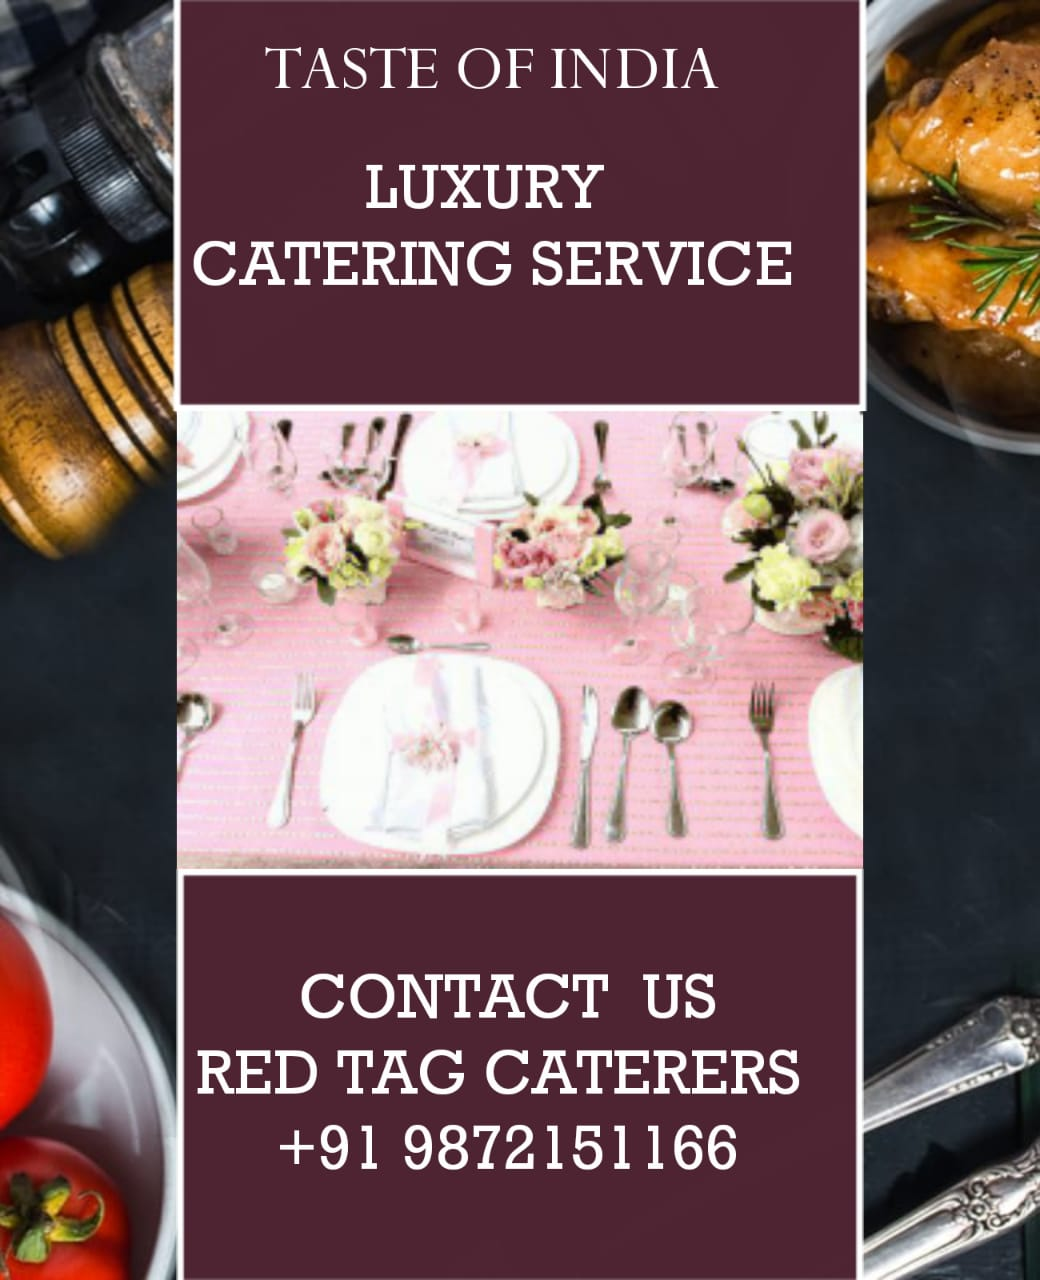 Red Tag Caterers, top caterers in mohali, best cateres in mohali, famous catering companies in mohali, catering companies in mohali, indoor and outdoor catering service in mohali